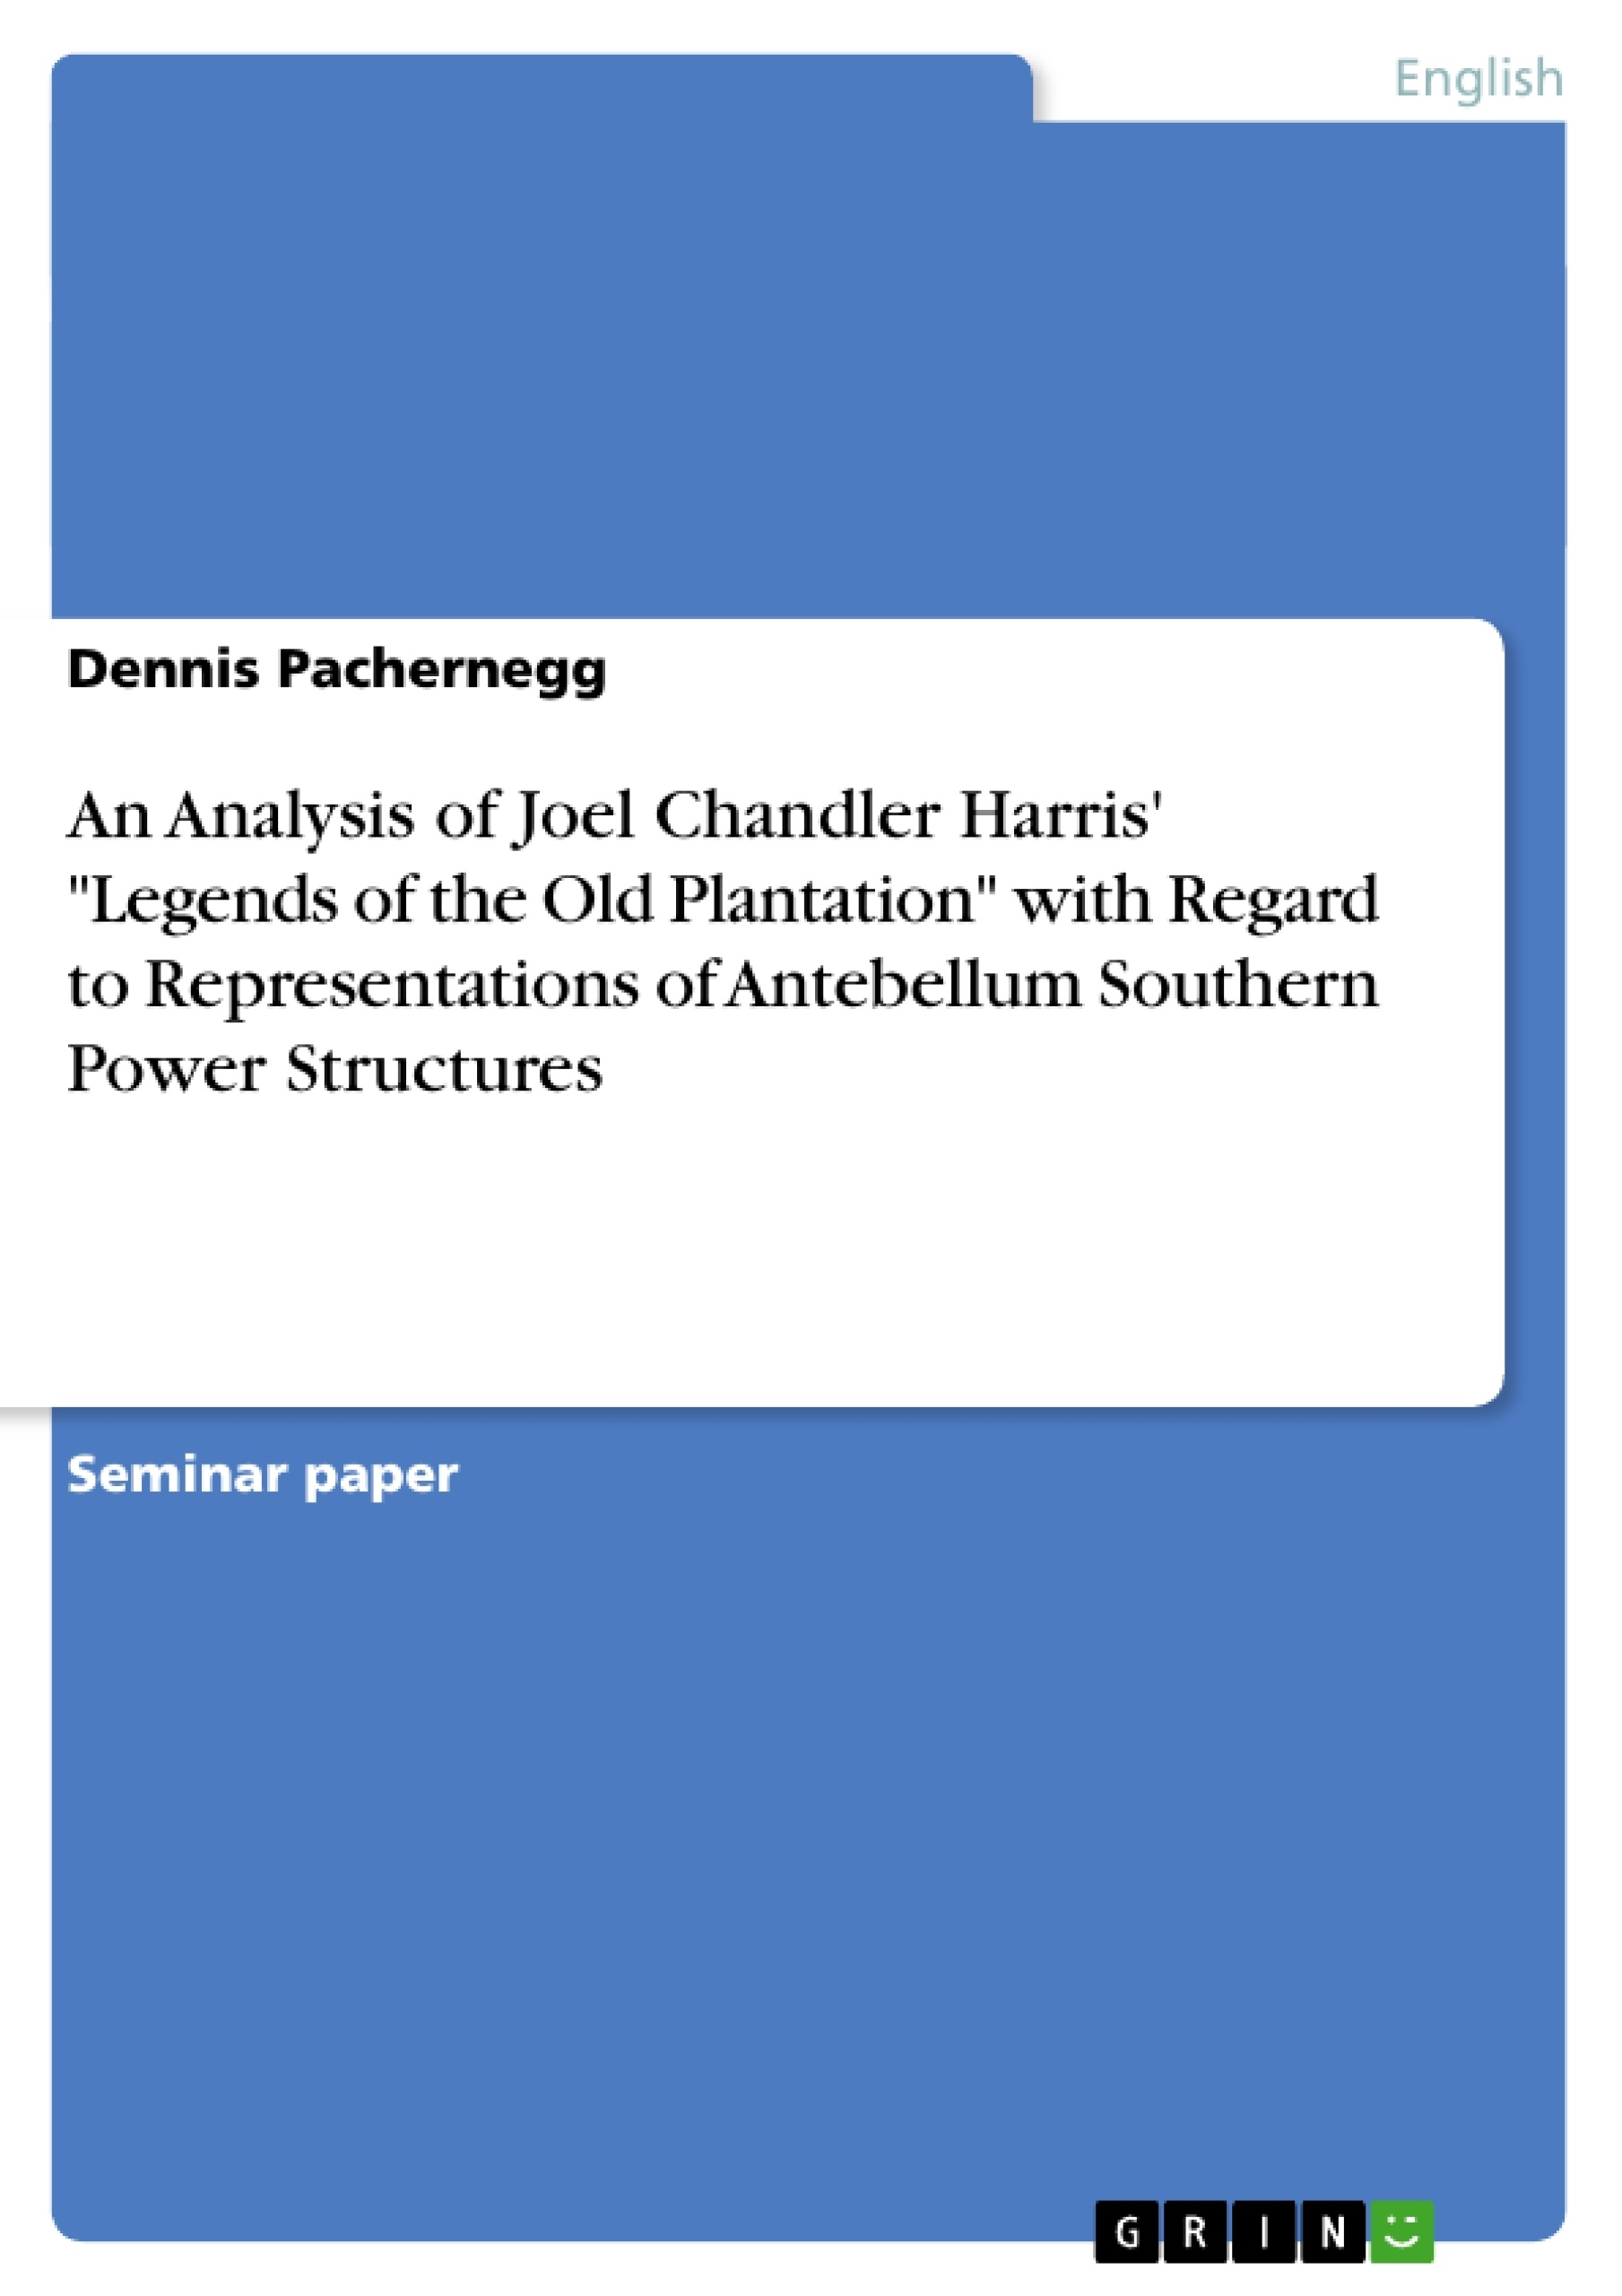 """Title: An Analysis of Joel Chandler Harris' """"Legends of the Old Plantation"""" with Regard to Representations of Antebellum Southern Power Structures"""